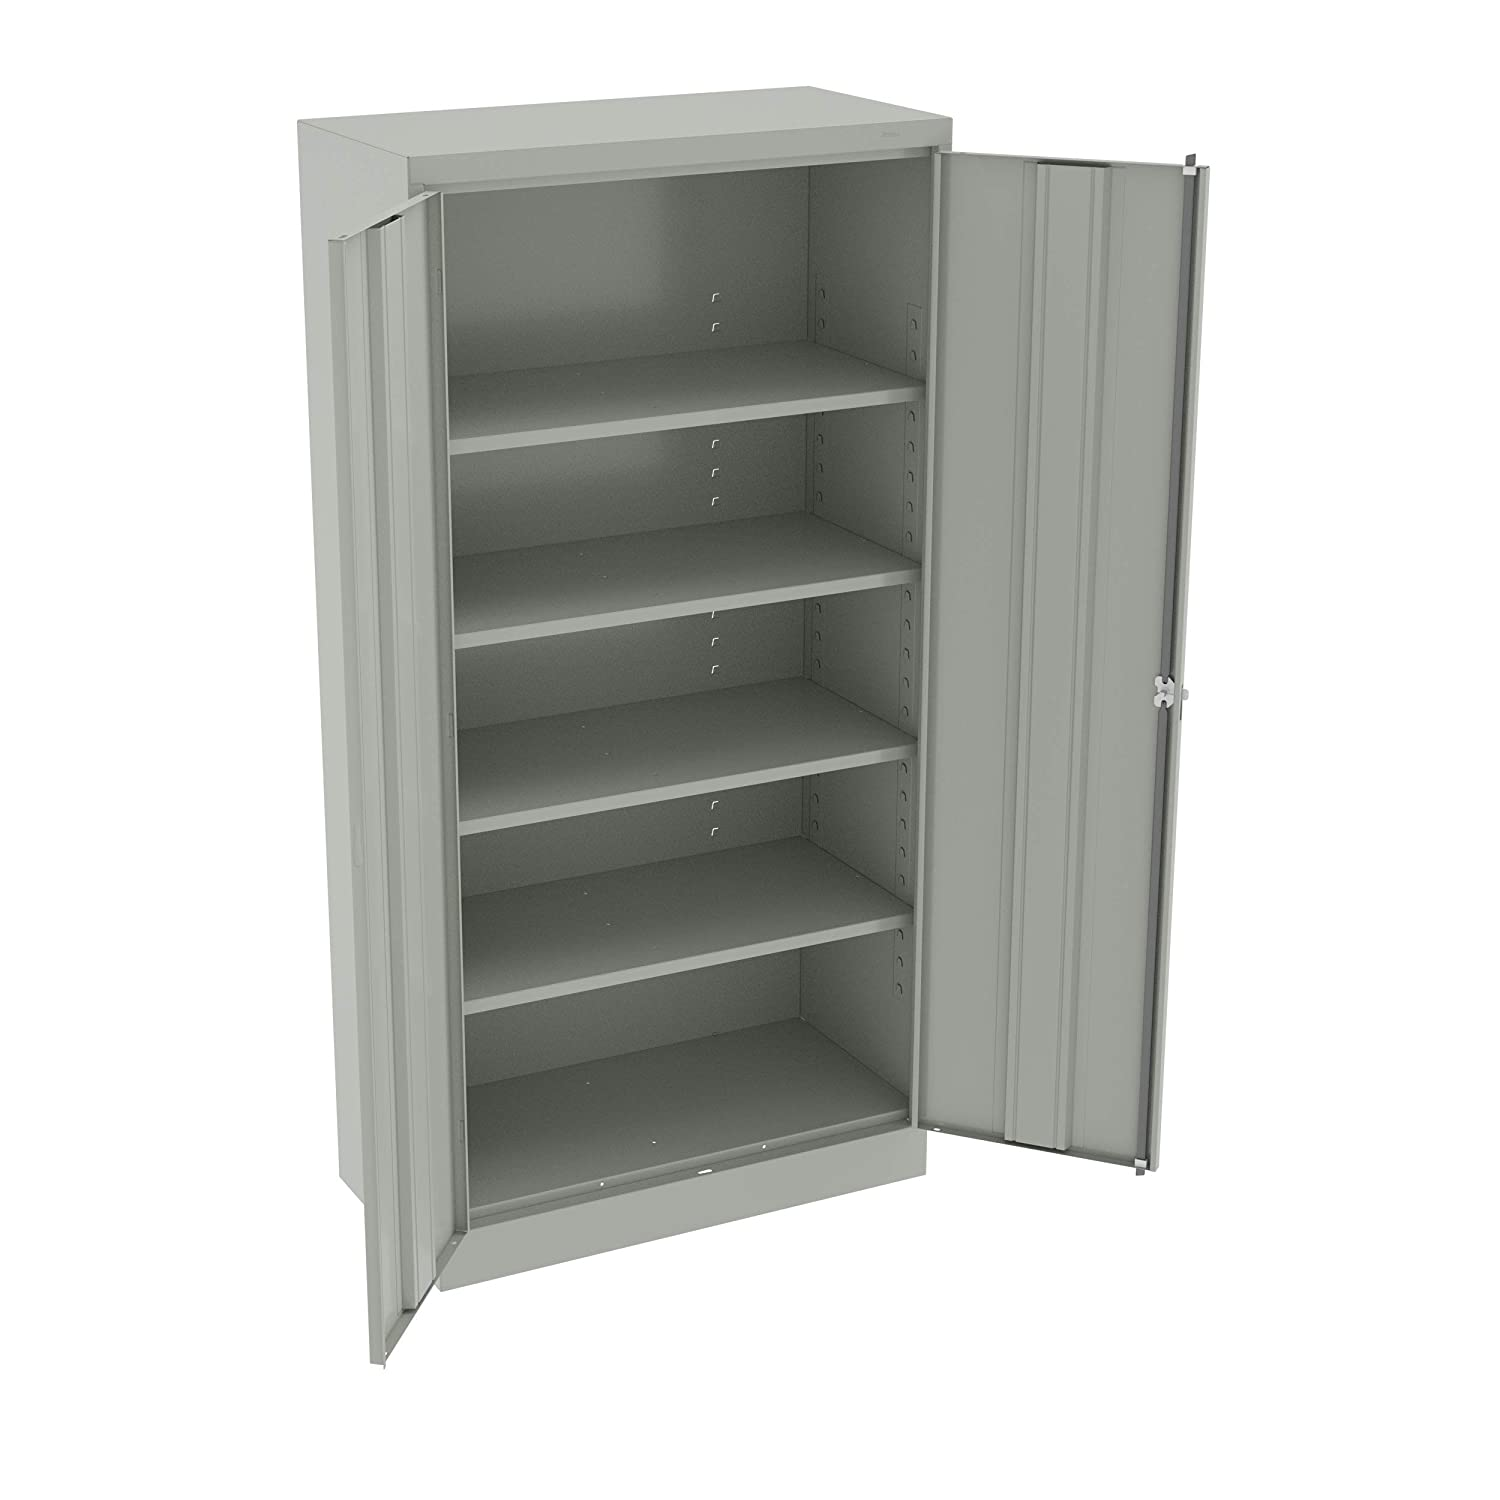 "Tennsco 7218-LGY 24 Gauge Steel Standard Welded Storage Cabinet, 4 Shelves, 150 lbs Capacity per Shelf, 36"" Width x 72"" Height x 18"" Depth, Light Grey"